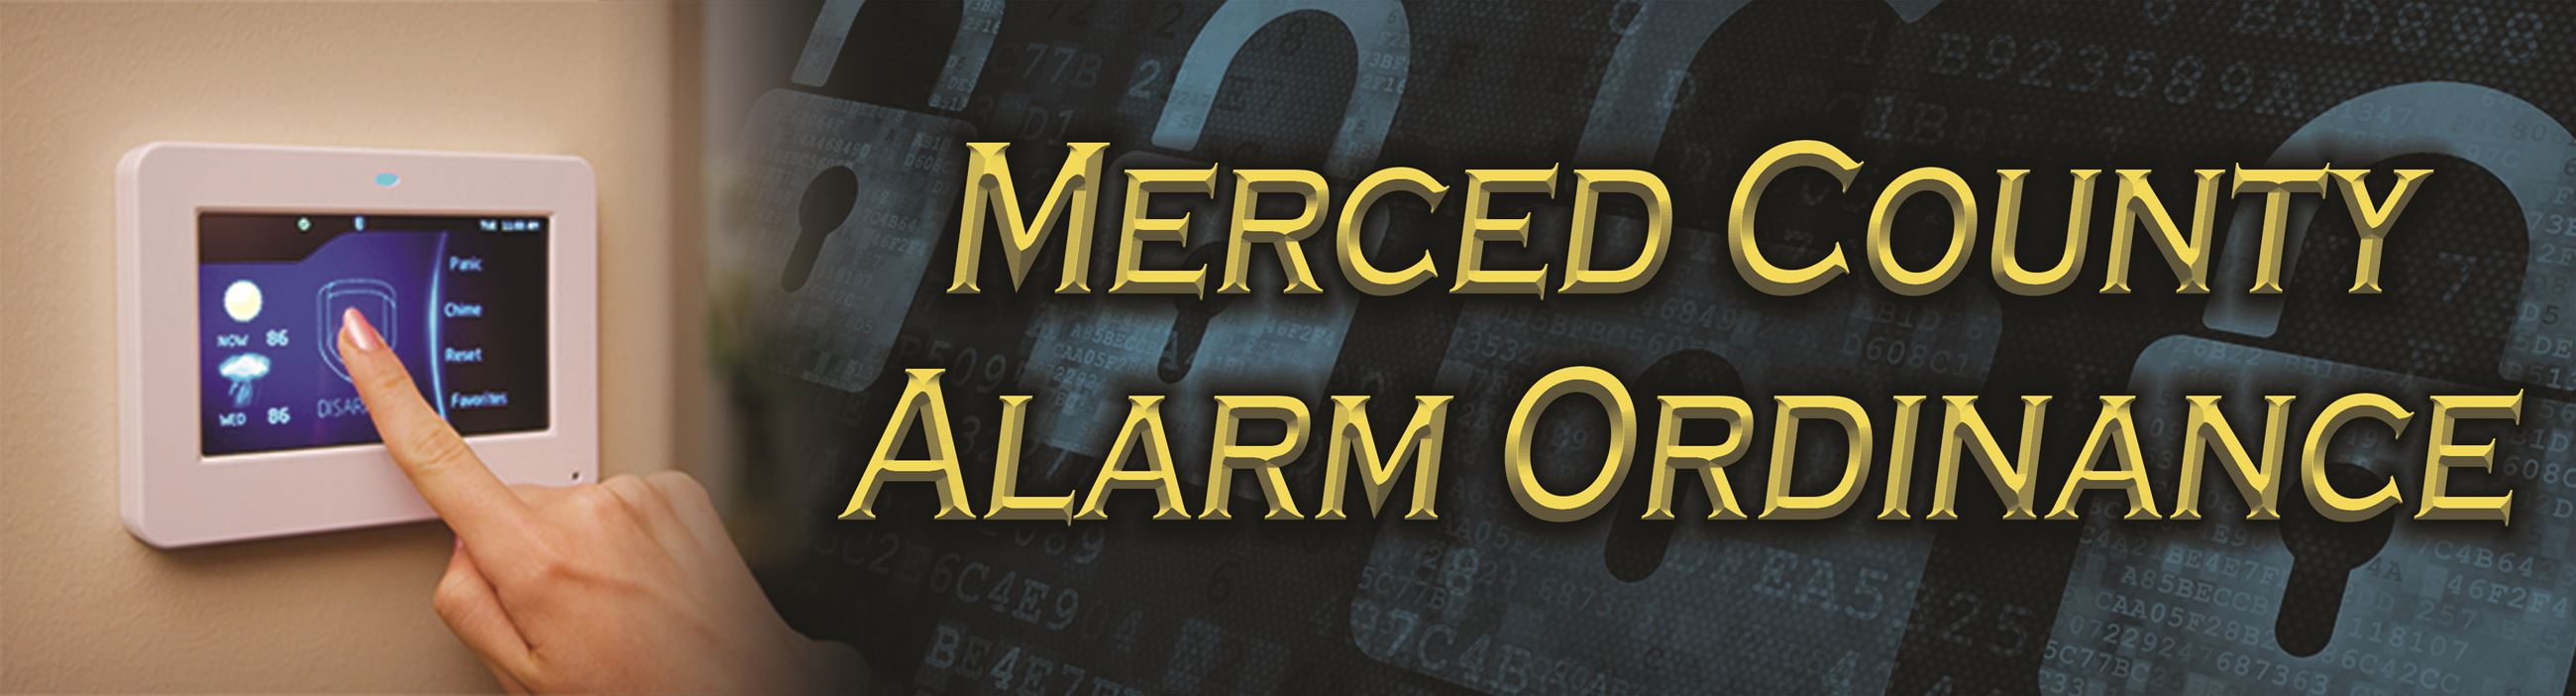 Alarm Ordinance Header